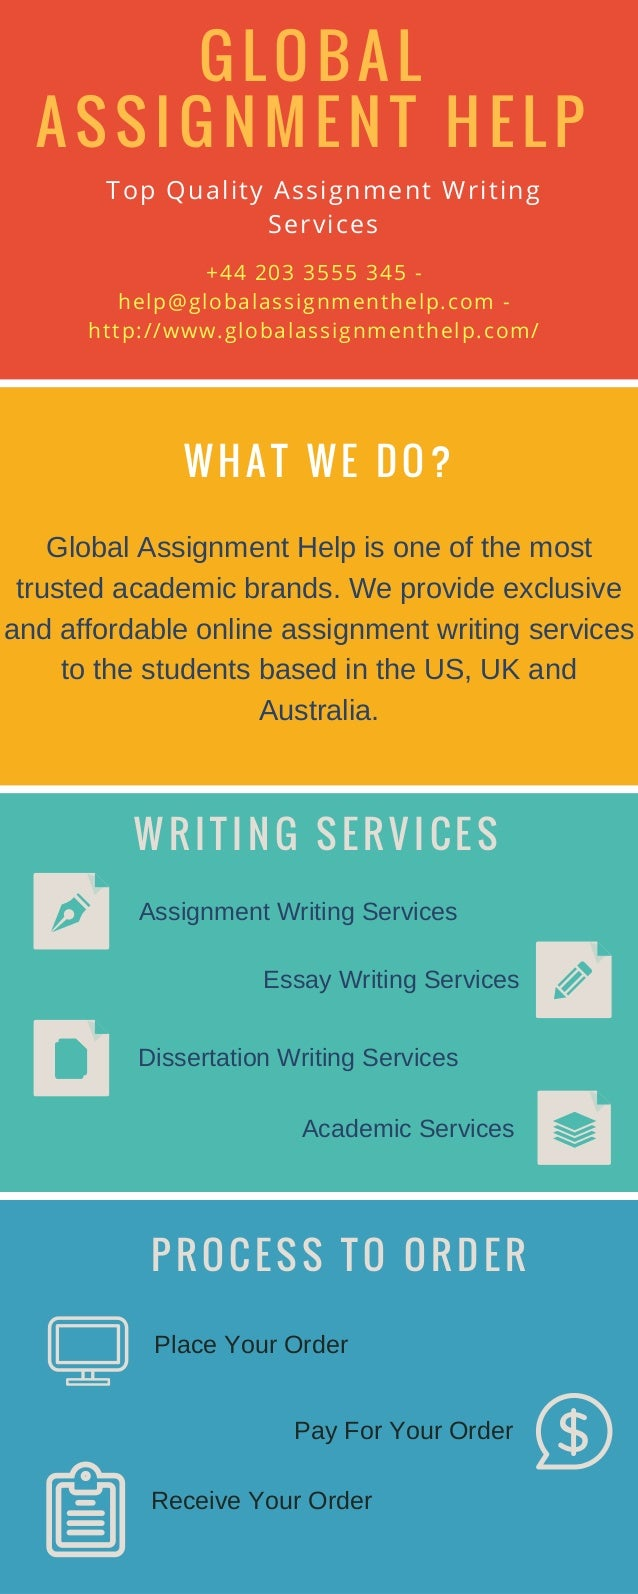 top quality assignment writing service global assignment help what we do top quality assignment writing services 44 203 3555